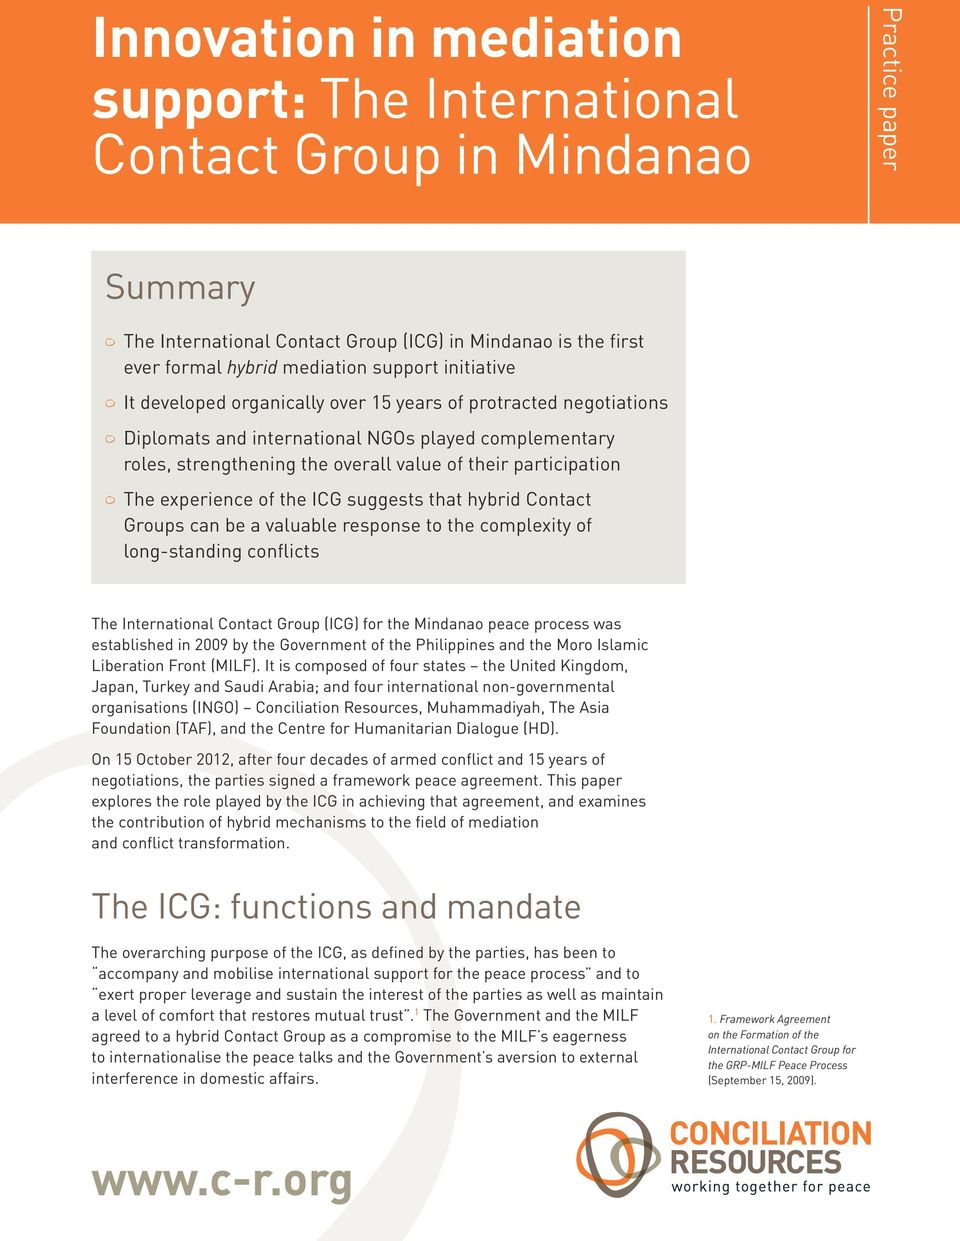 The experience of the ICG suggests that hybrid Contact Groups can be a valuable response to the complexity of long-standing conflicts The International Contact Group (ICG) for the Mindanao peace